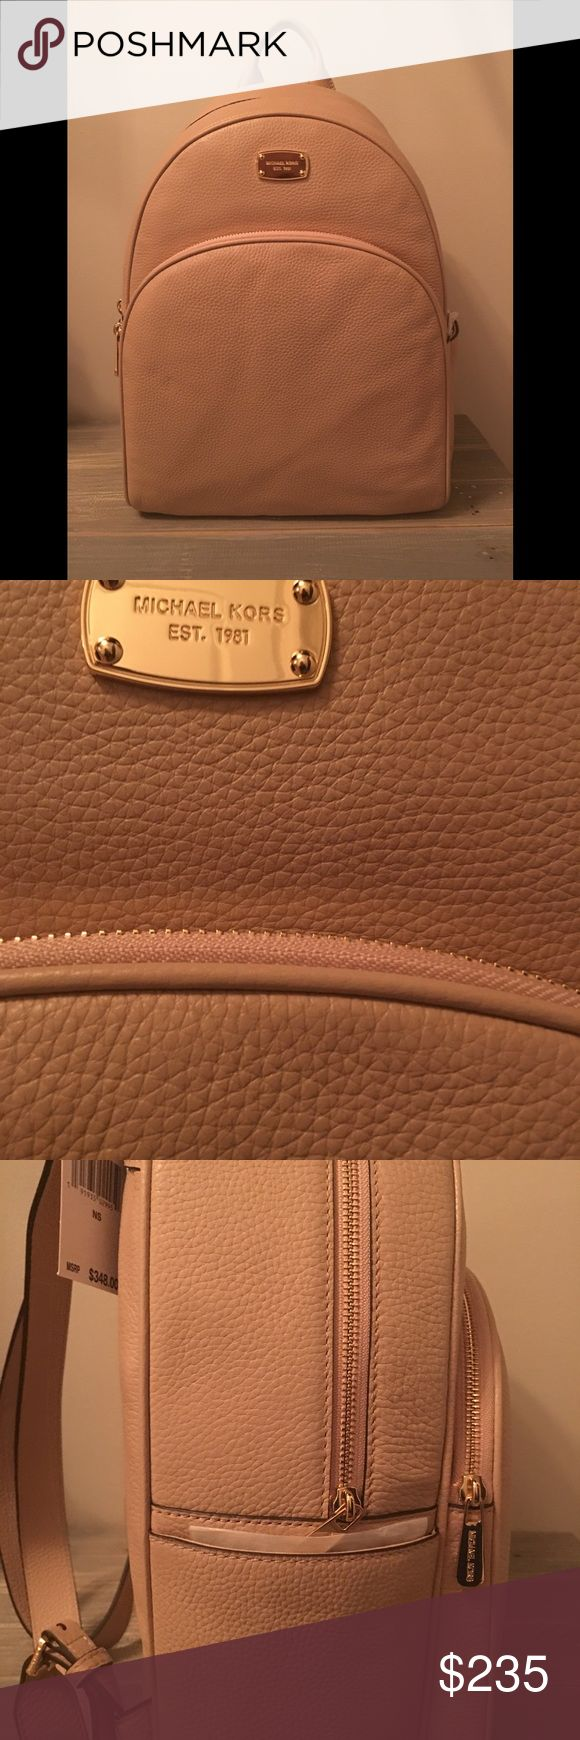 NWT Michael Kors LARGE Abbey Backpack, Blush NWT Michael Kors LARGE Abbey Backpack in Blush. Beautiful leather with stunning gold hardware. Perfect staple piece for any closet. Color is hard to find, only 1 available! Michael Kors Bags Backpacks